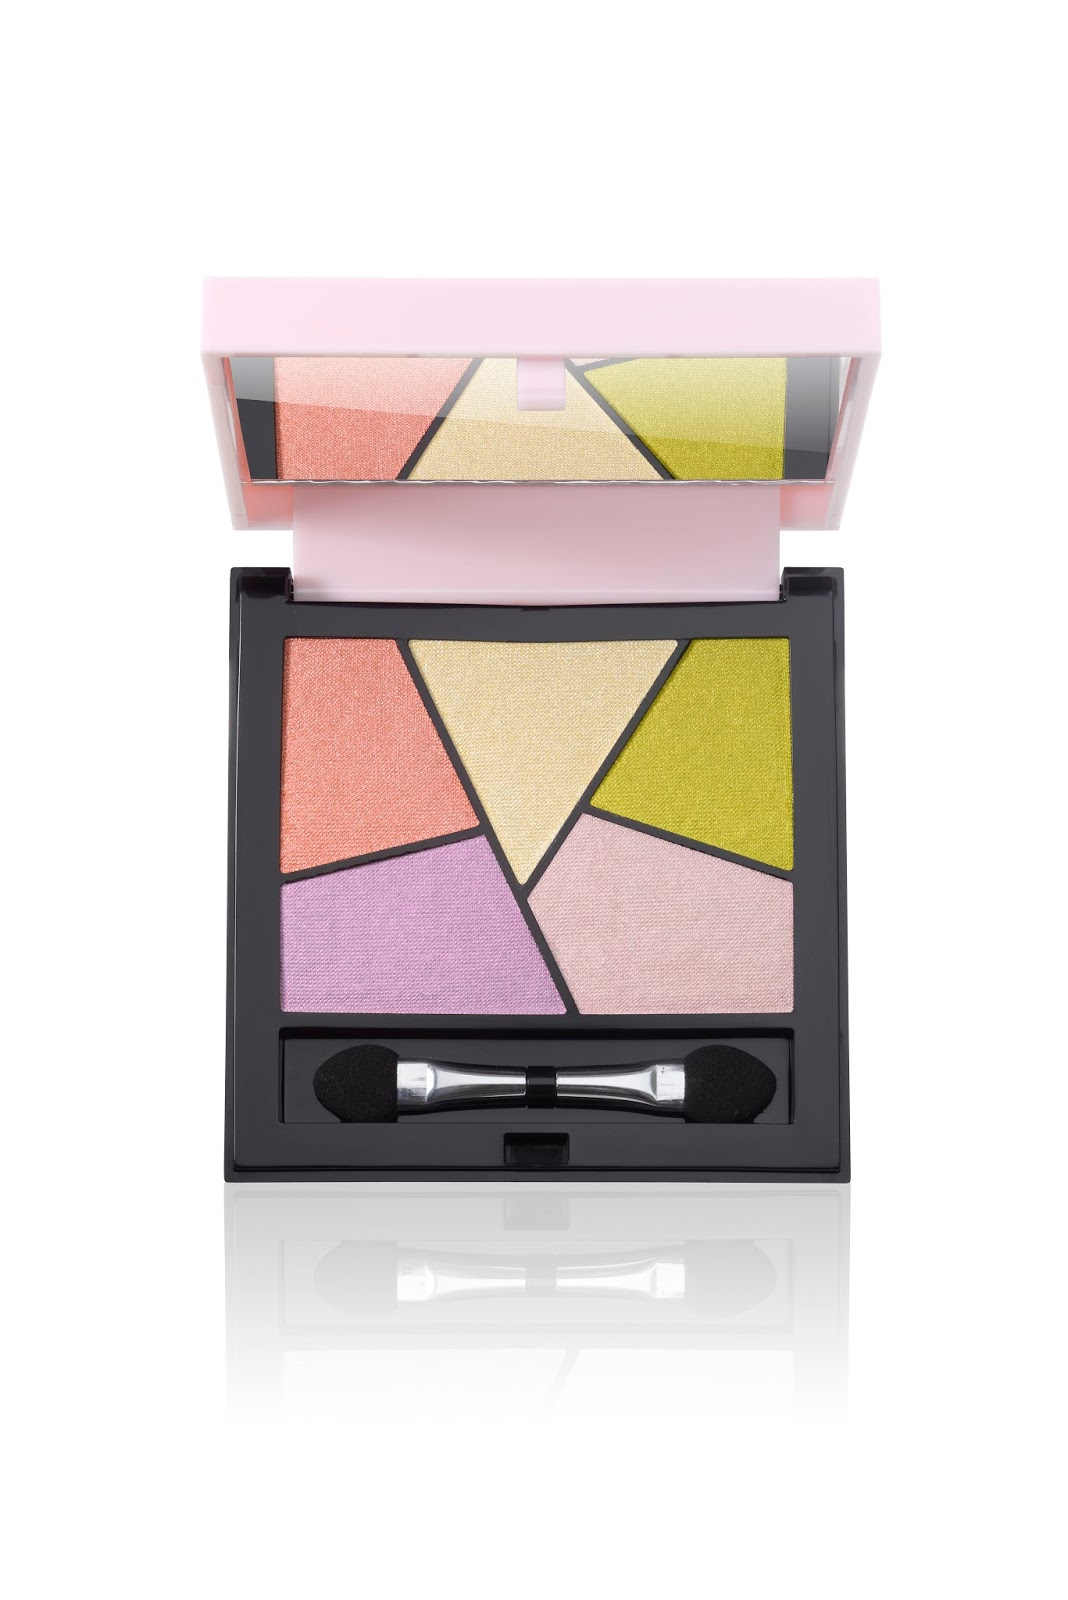 pupa Graphic Eyeshadow Palette 001